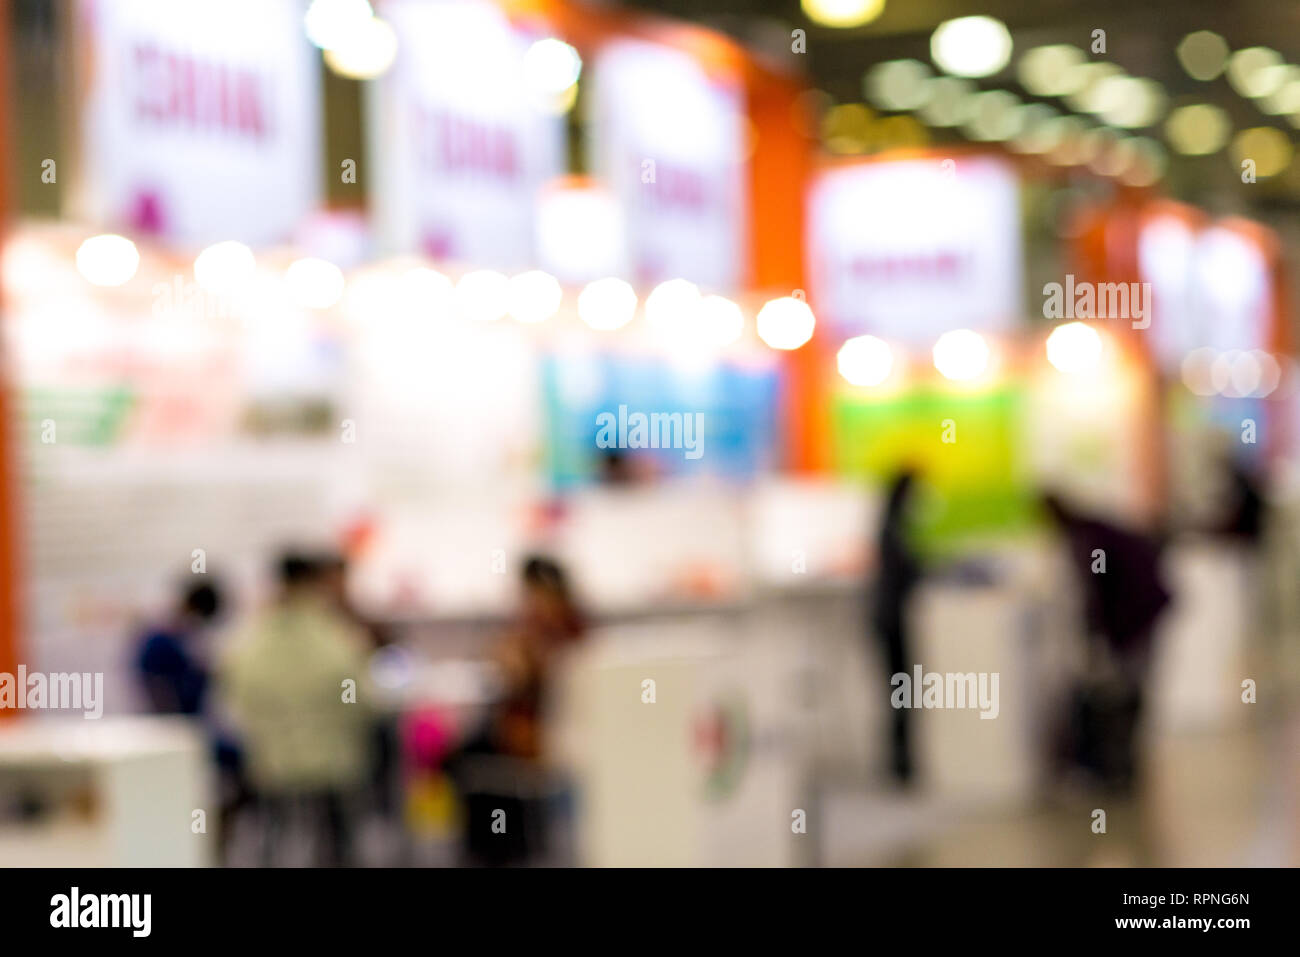 Abstract blur image of retail shop at indoor day market for background usage. - Stock & The Retail Tent Stock Photos u0026 The Retail Tent Stock Images - Page 2 ...